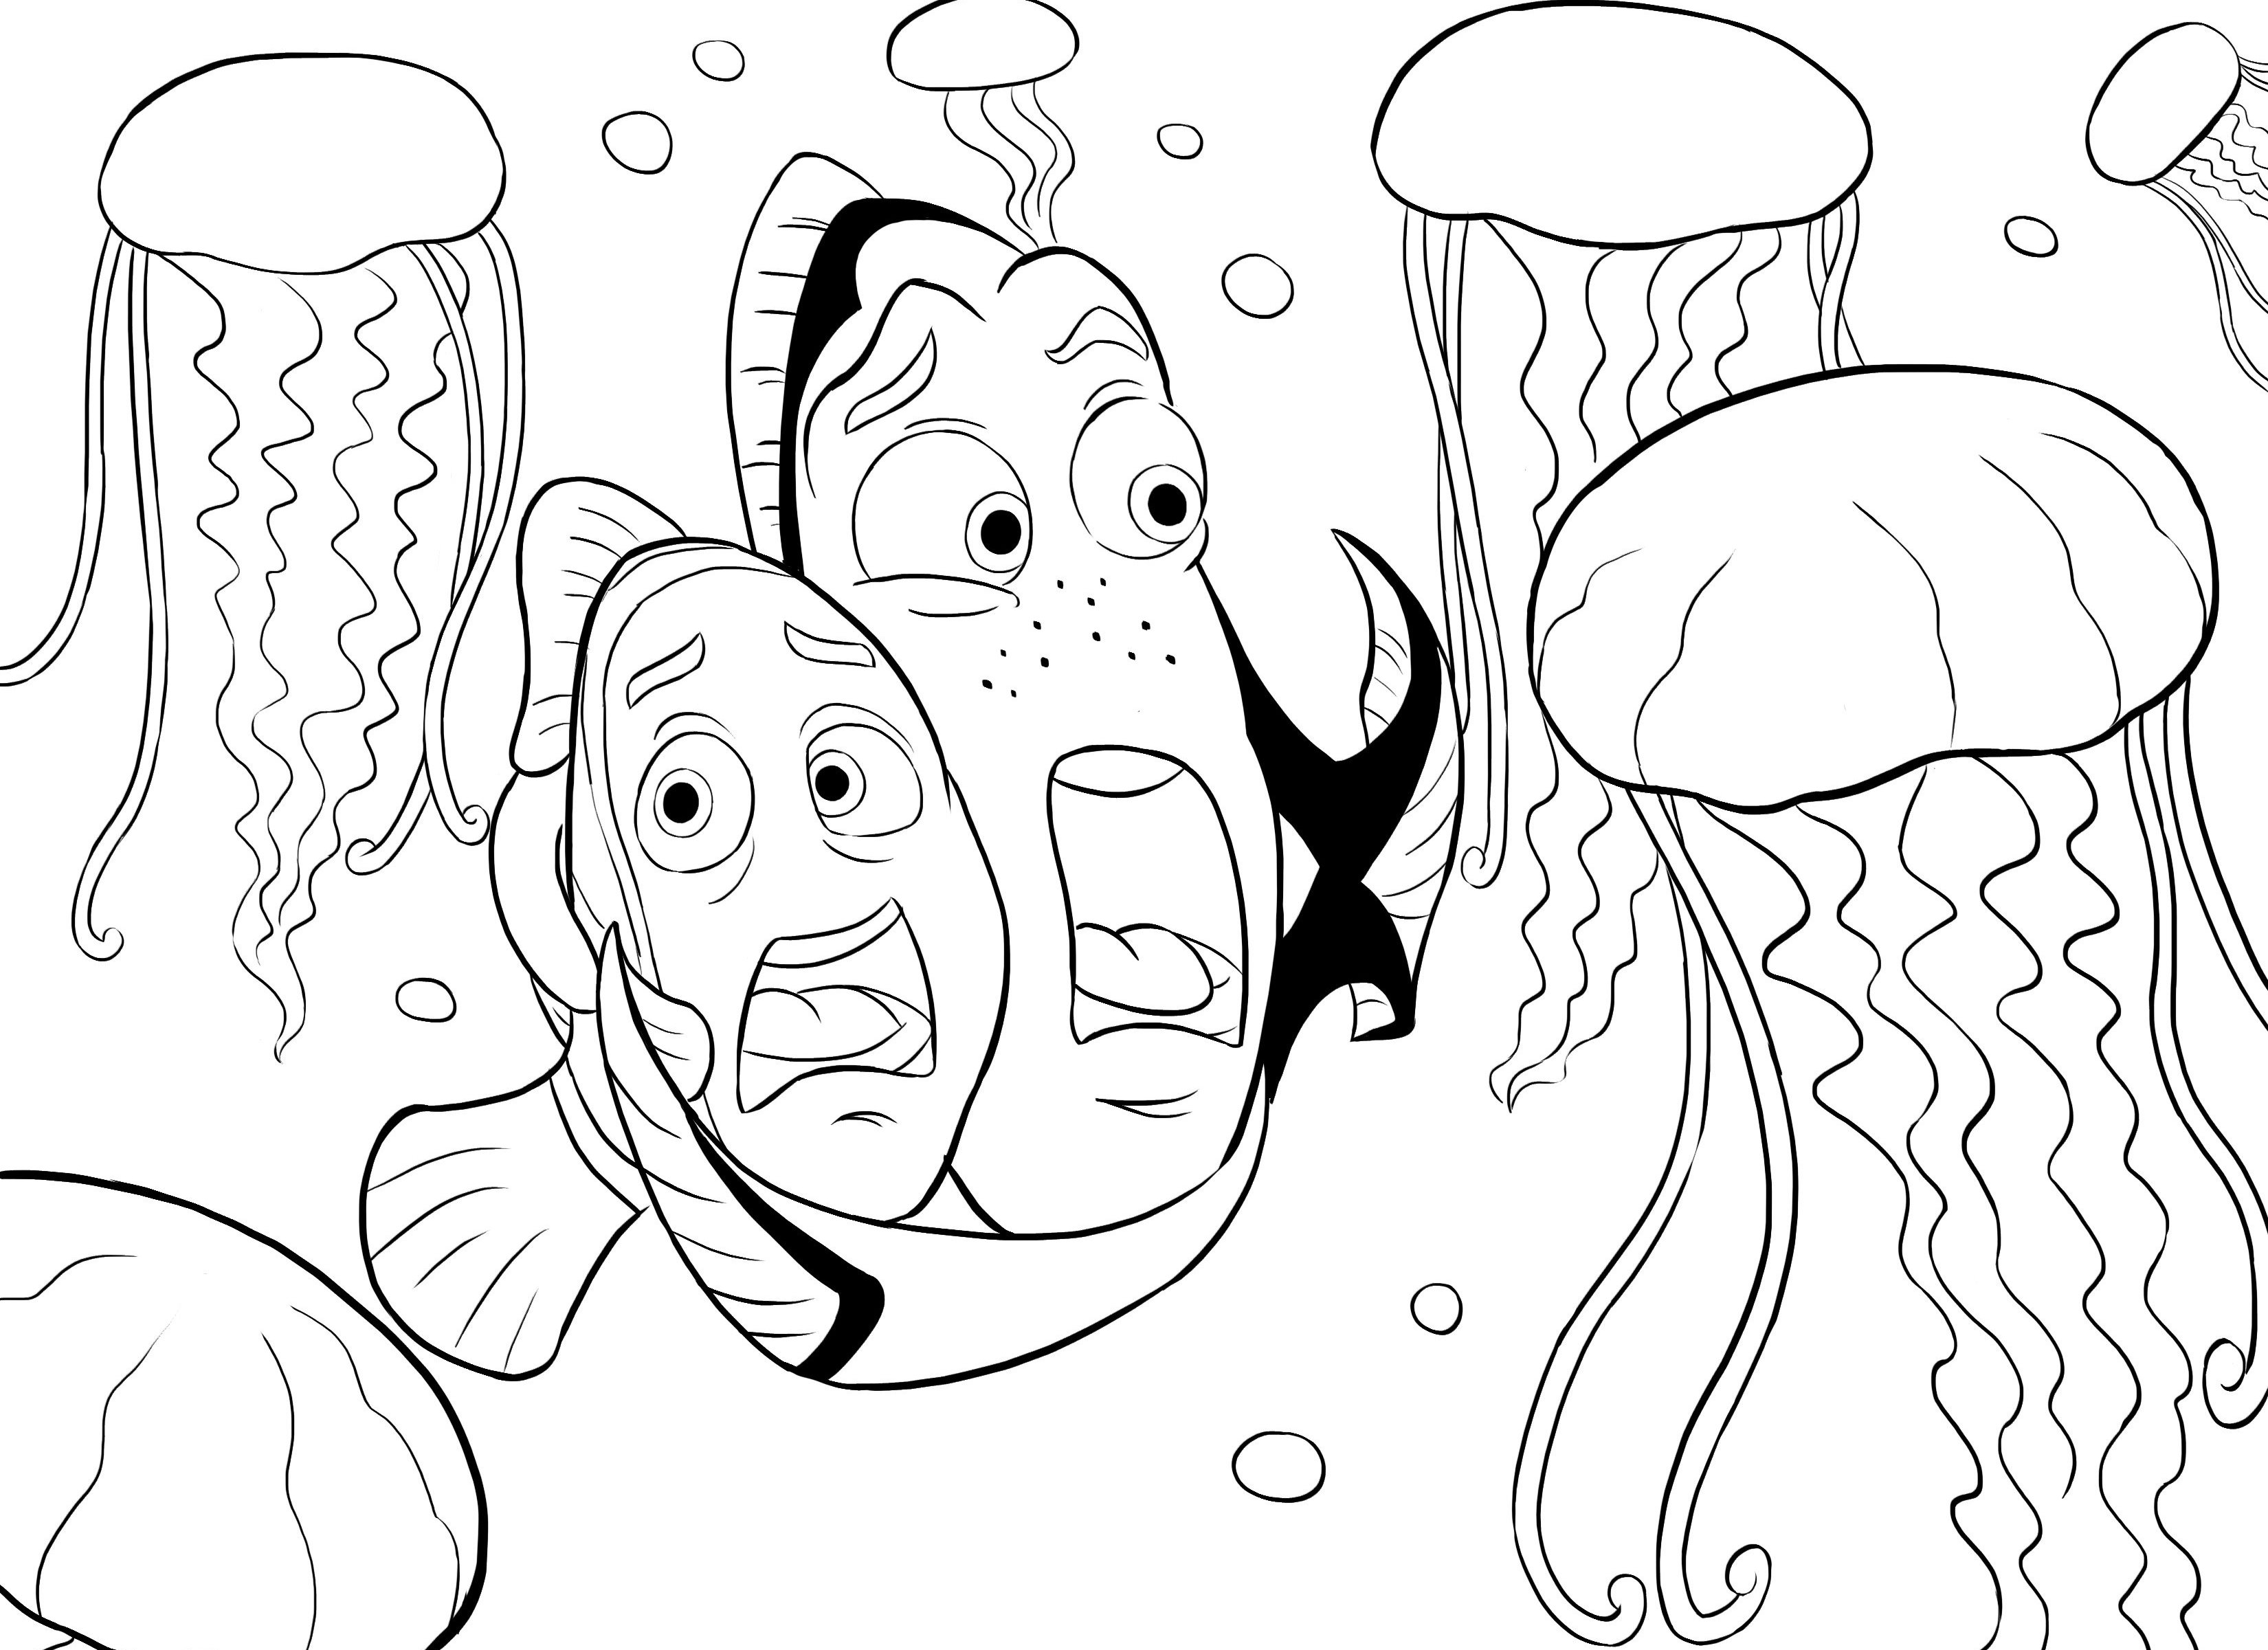 Cute Finding Nemo Coloring Pages